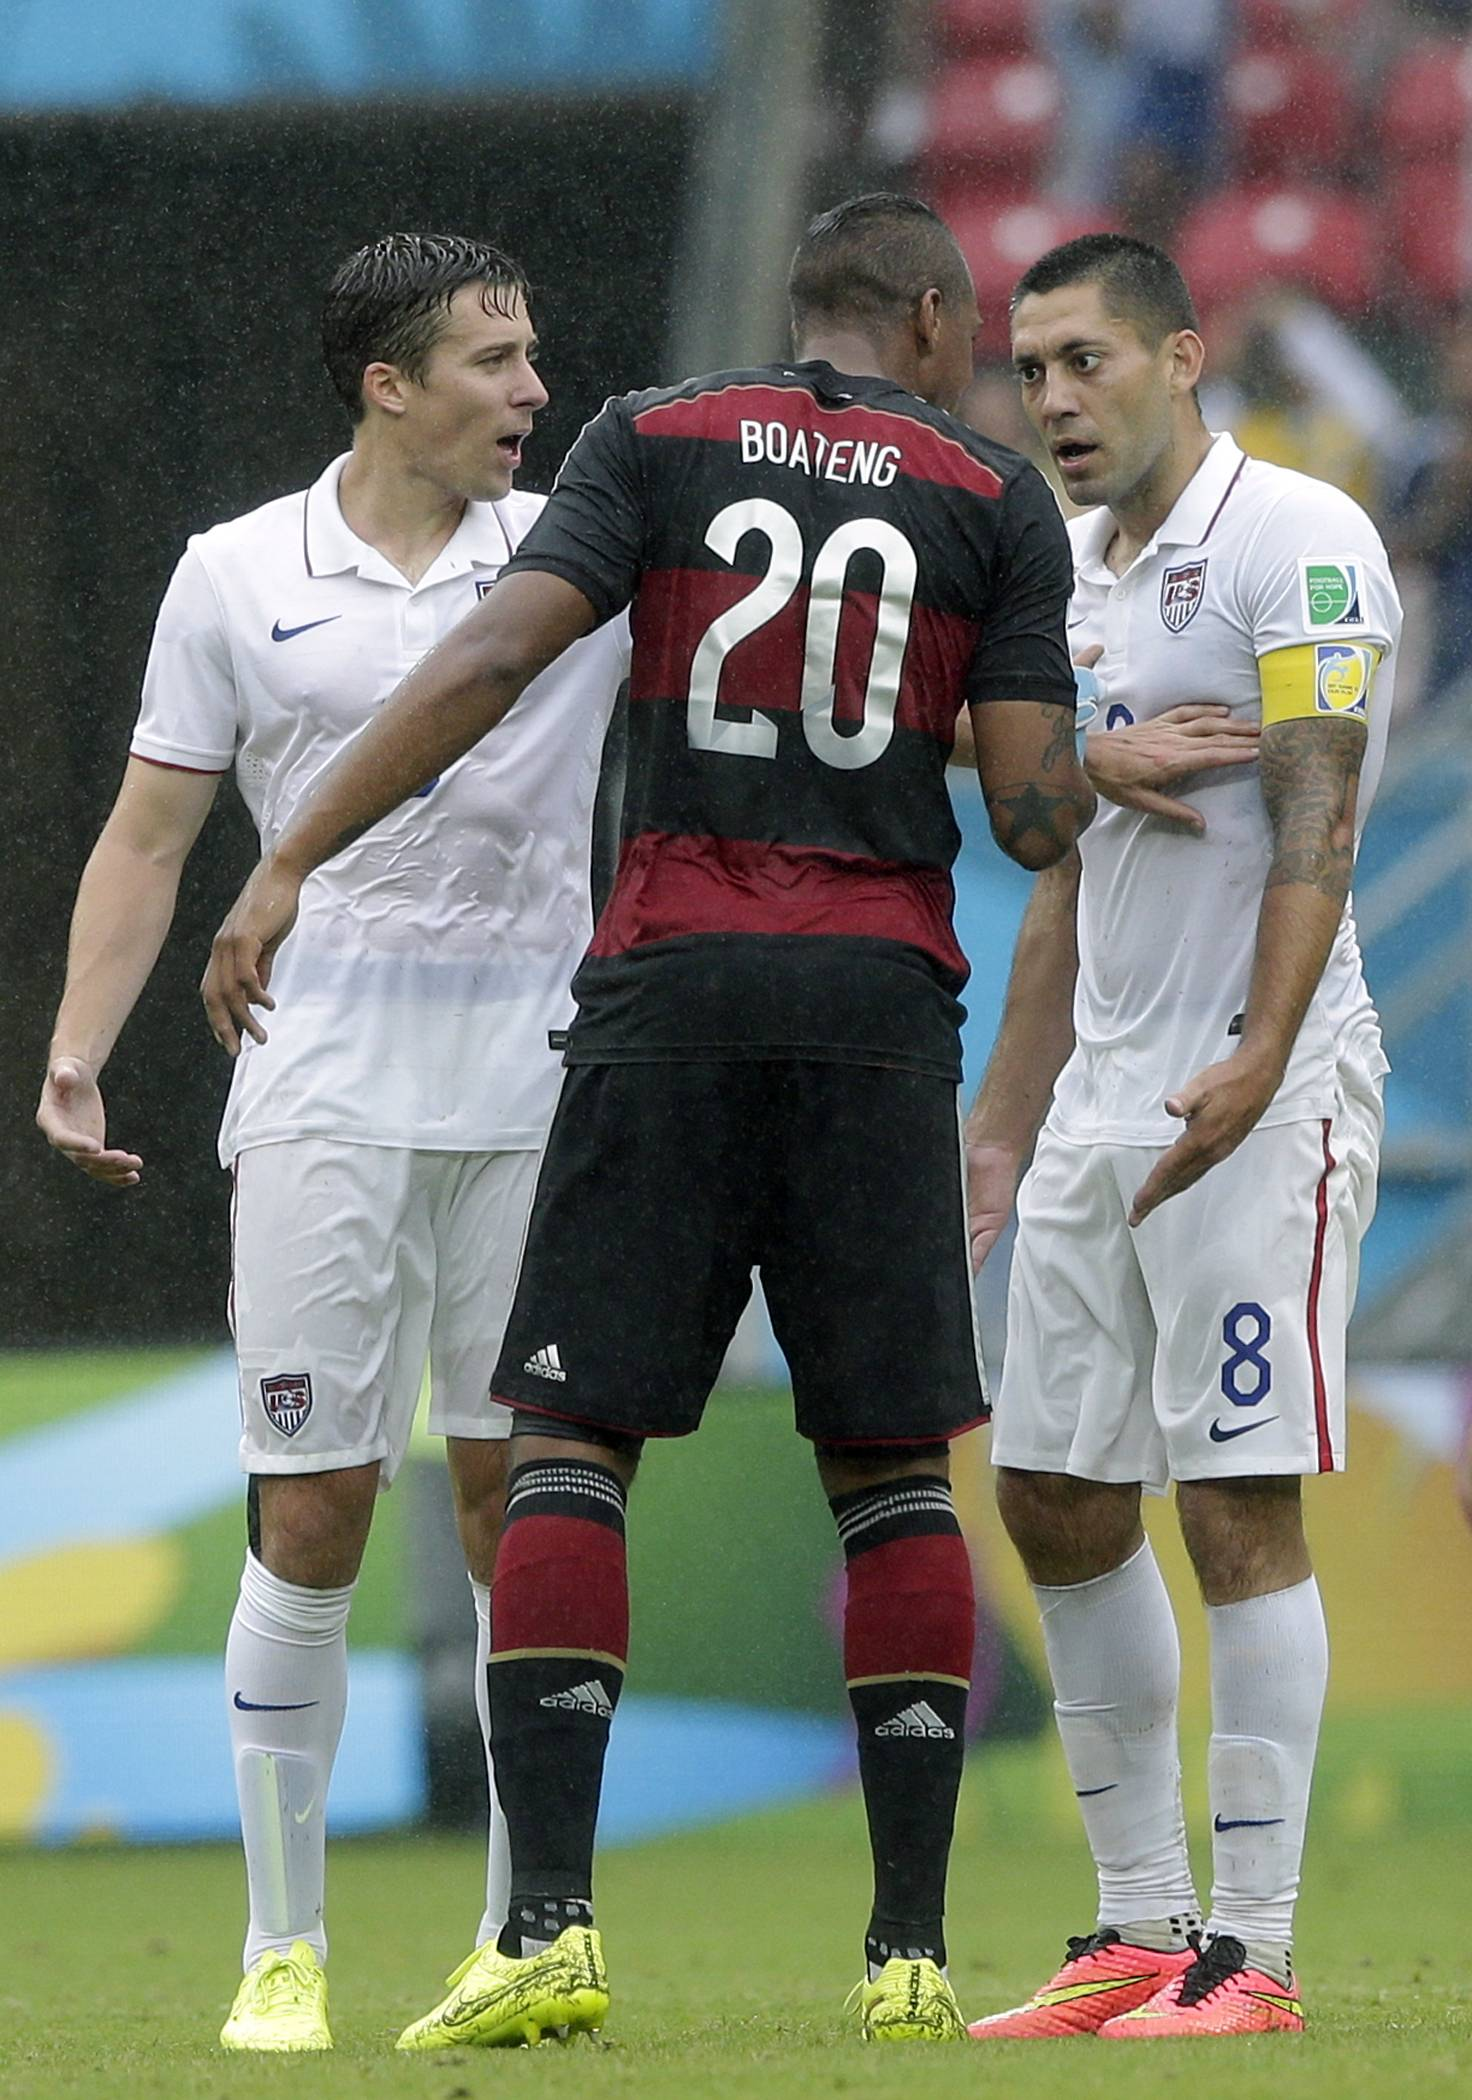 Germany's Jerome Boateng, center, argues with United States' Clint Dempsey, right, as United States' Omar Gonzalez looks on during the group G World Cup soccer match between the USA and Germany at the Arena Pernambuco in Recife, Brazil, Thursday, June 26, 2014.